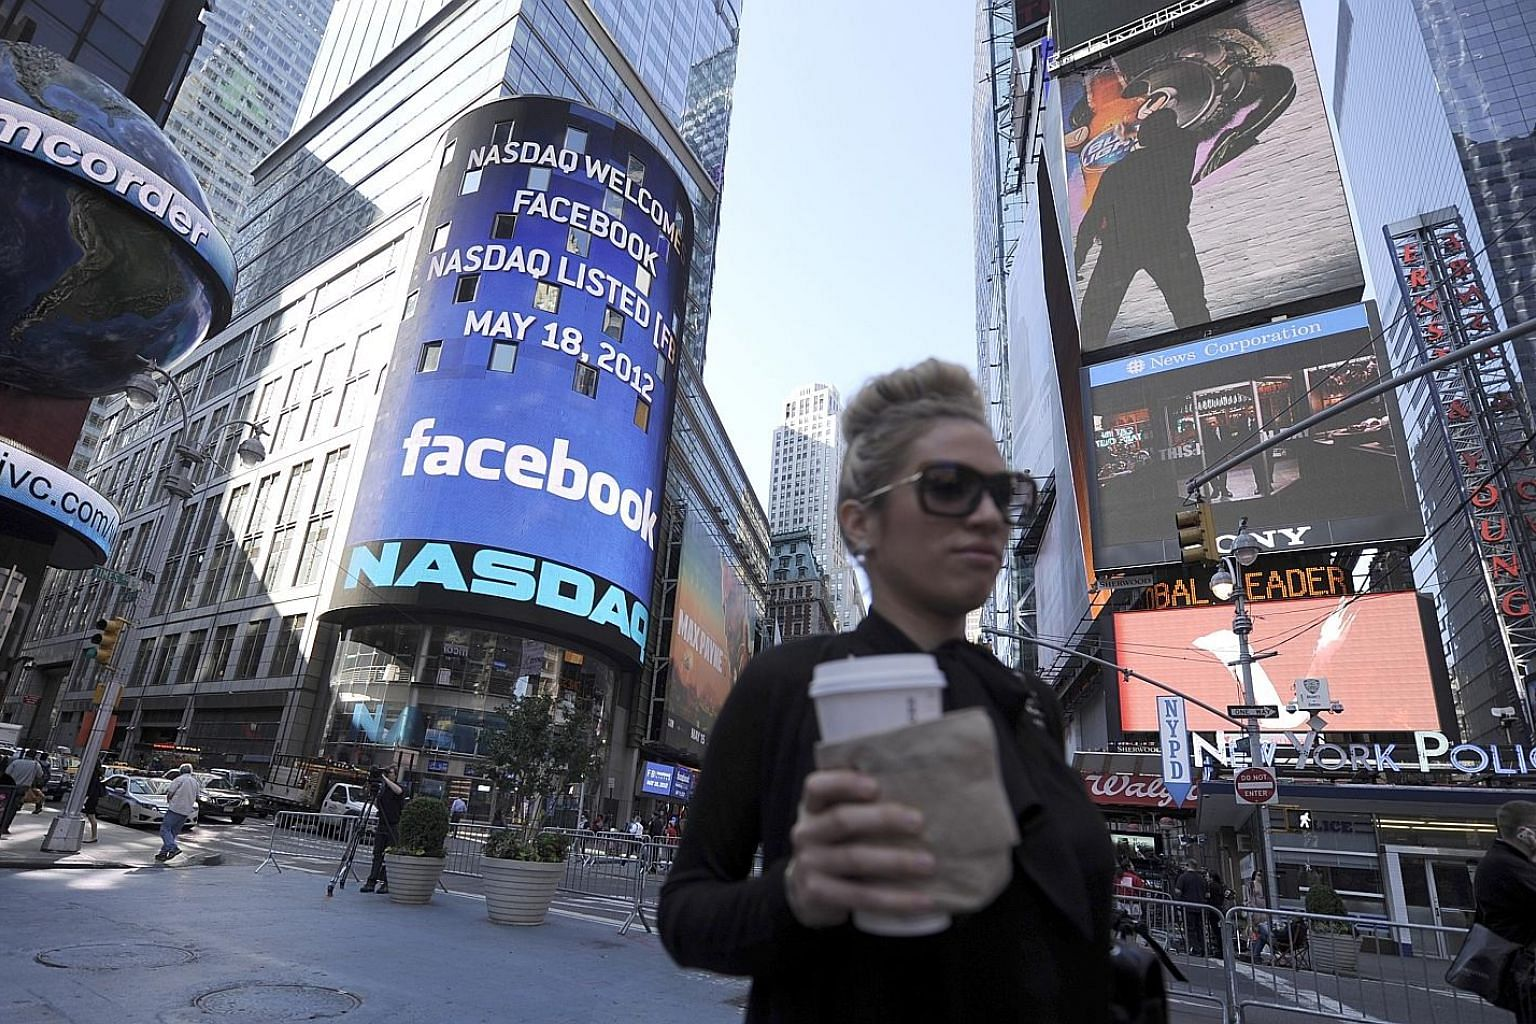 Facebook's shares fell 20 per cent on Thursday and $150 billion was wiped off its market value but it remains the dominant social media player.